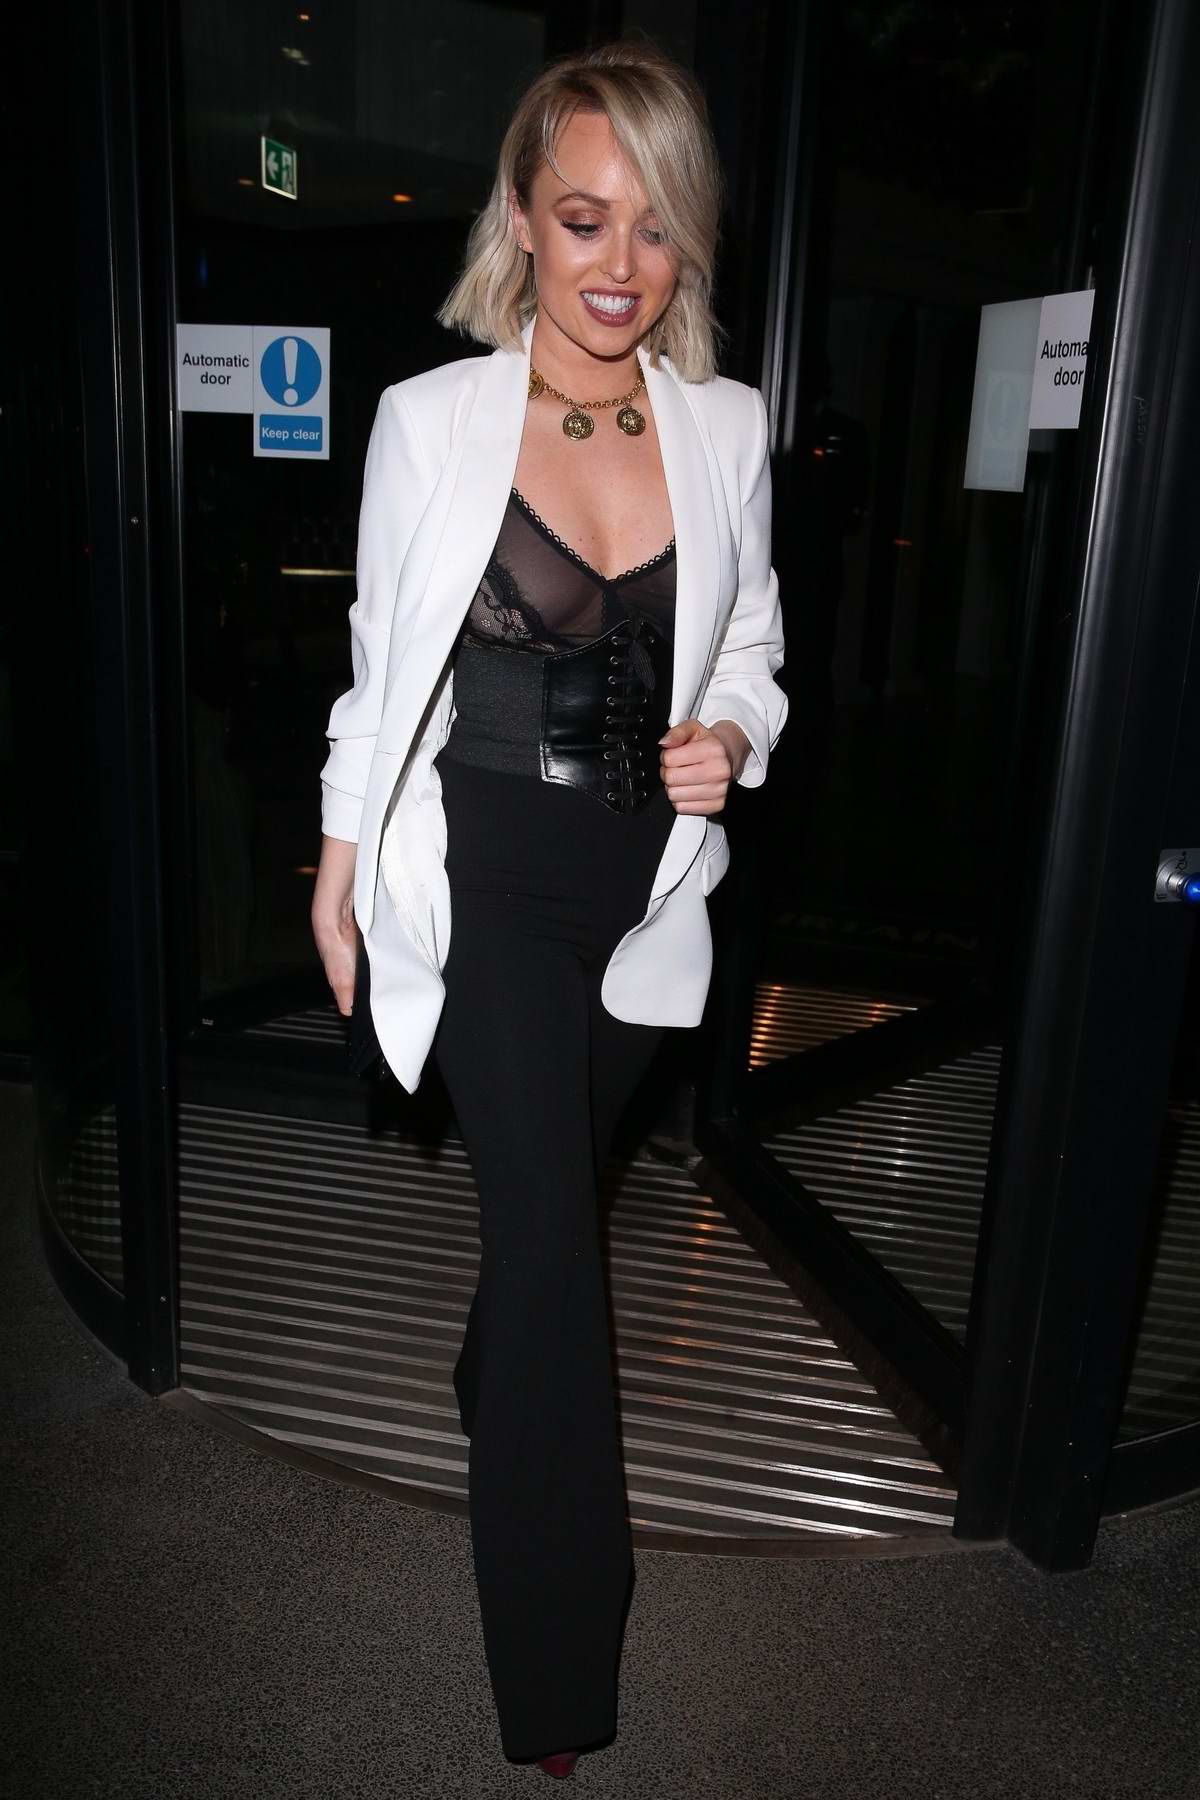 Jorgie Porter at Fabulous Magazine 10th birthday party in London